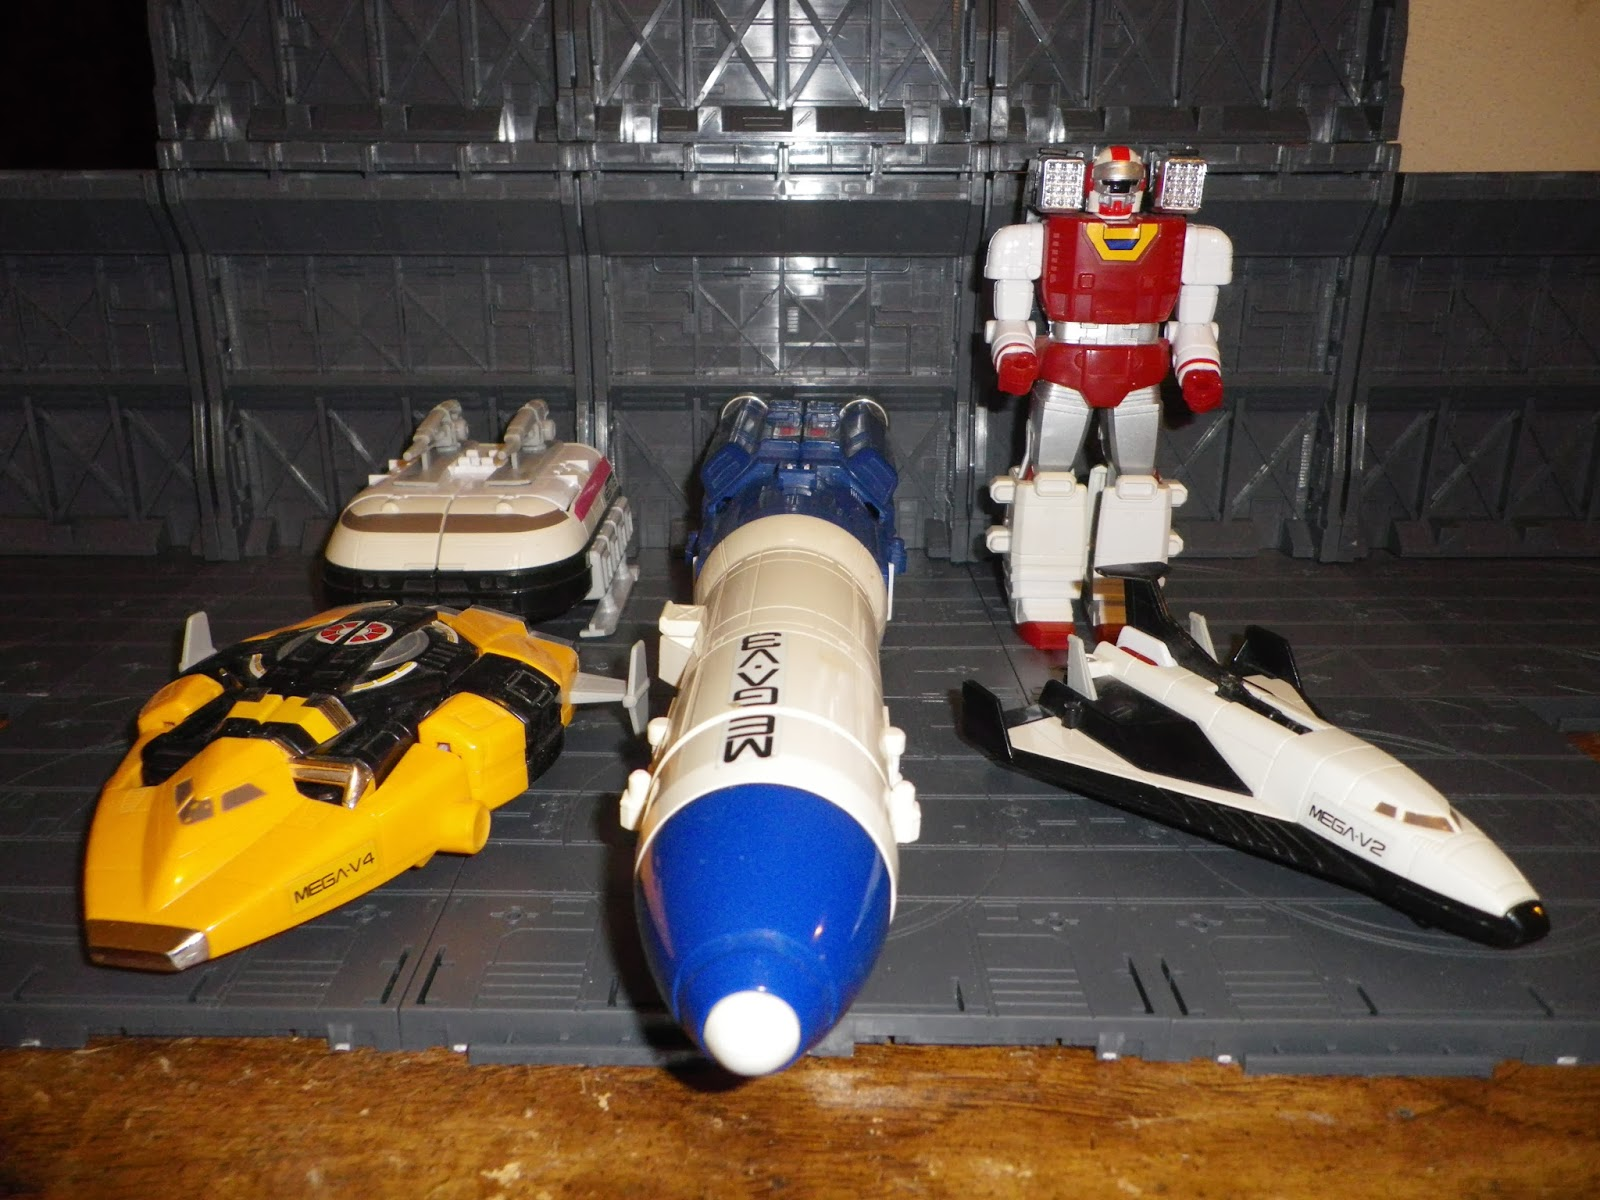 power ranger space shuttle - photo #29